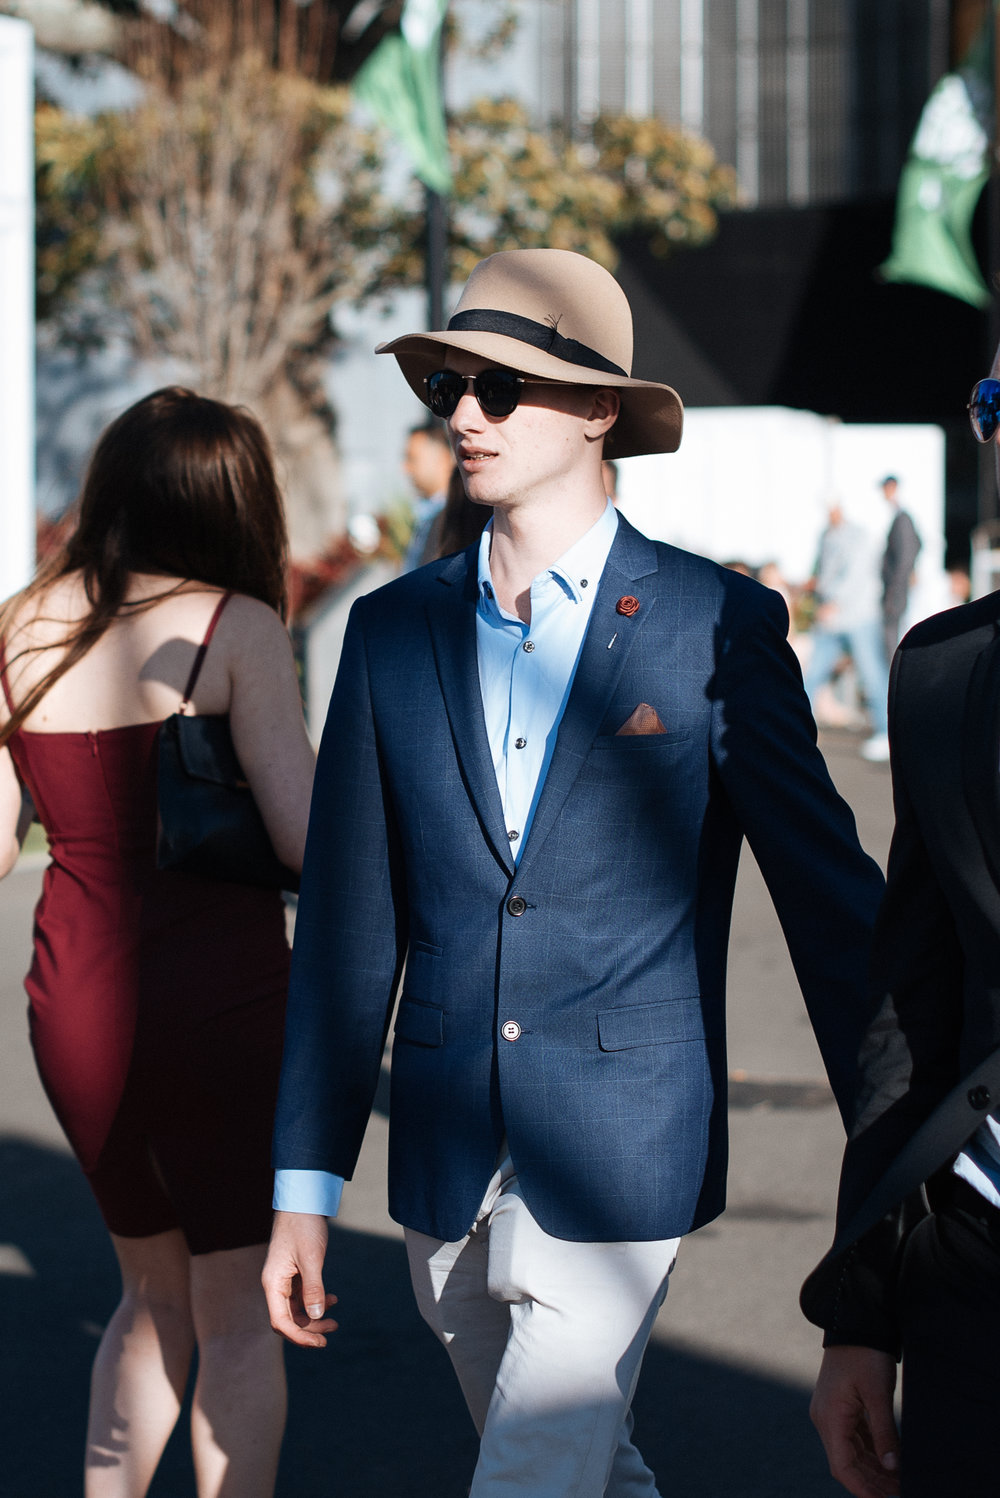 I had the opportunity to attend the races at the Sydney Spring Carnival at Royal Randwick this past weekend and capture Sydney in full bloom. Specifically the men bringing their millinery game on, theme being straw hats, with the exception of a few just really great hats.